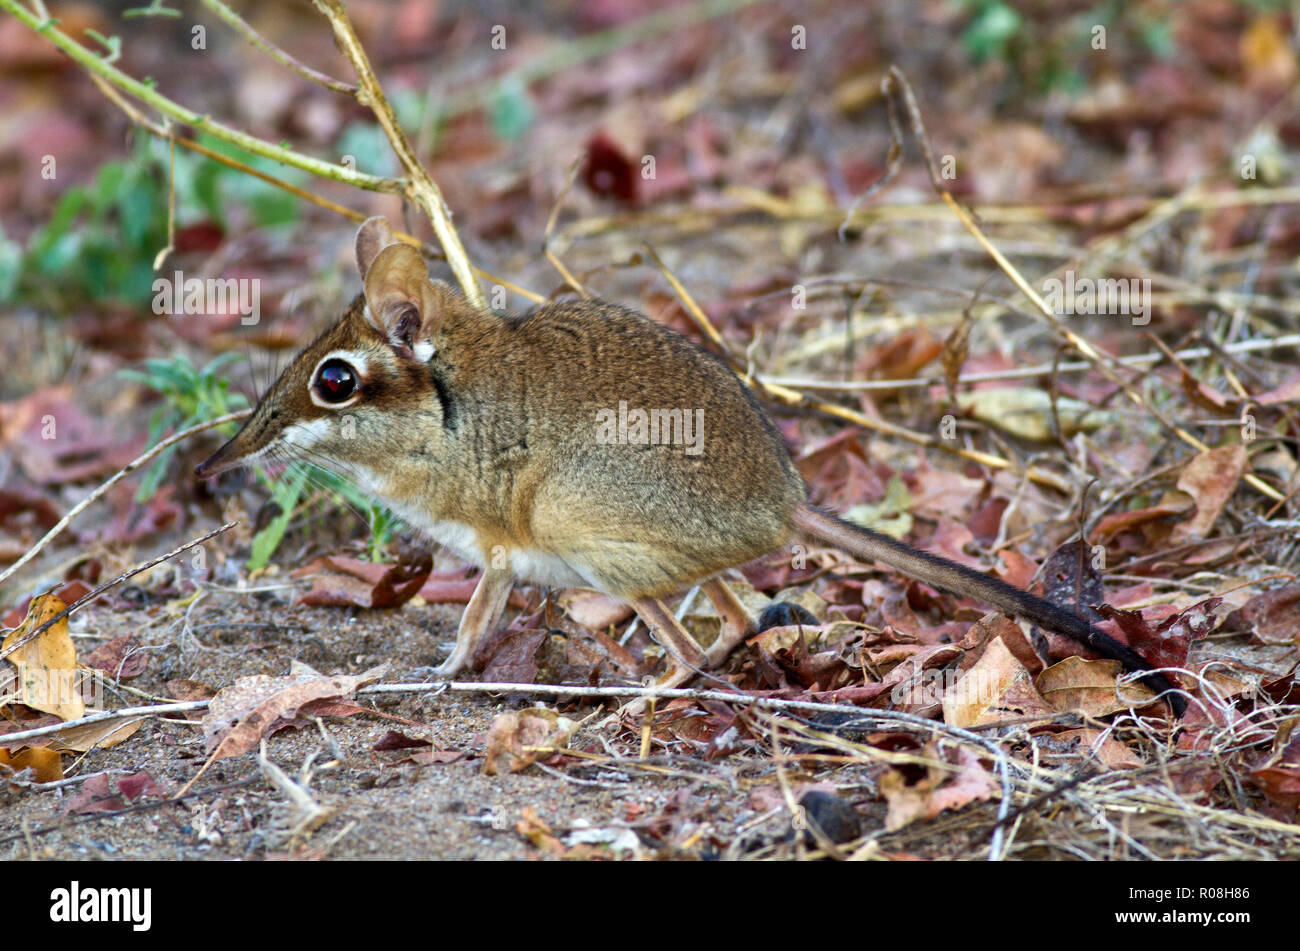 The Four-toed Elephant Shrew or Senji is a diminutive but extremely active hunter of invertibrates running along the regularly patrolled and cleared p - Stock Image